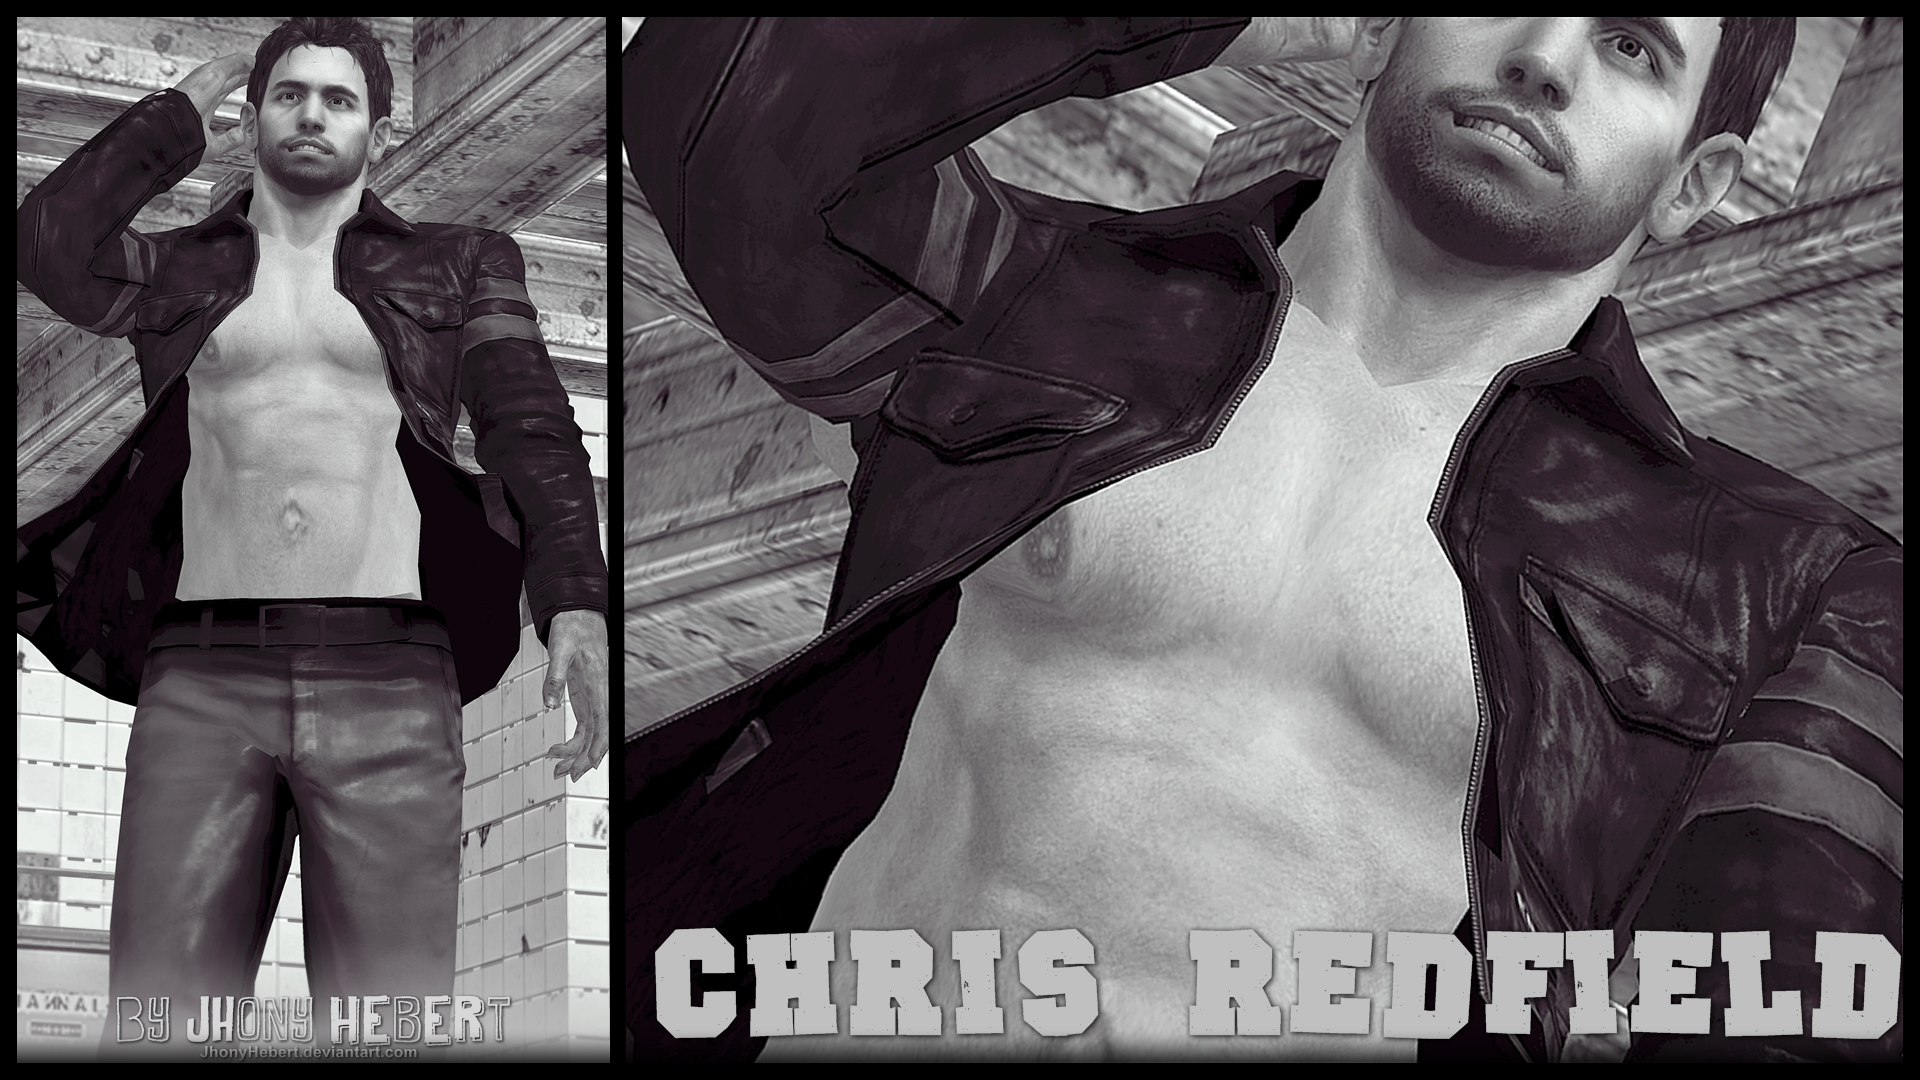 Chris Redfield Shirtless by JhonyHebert